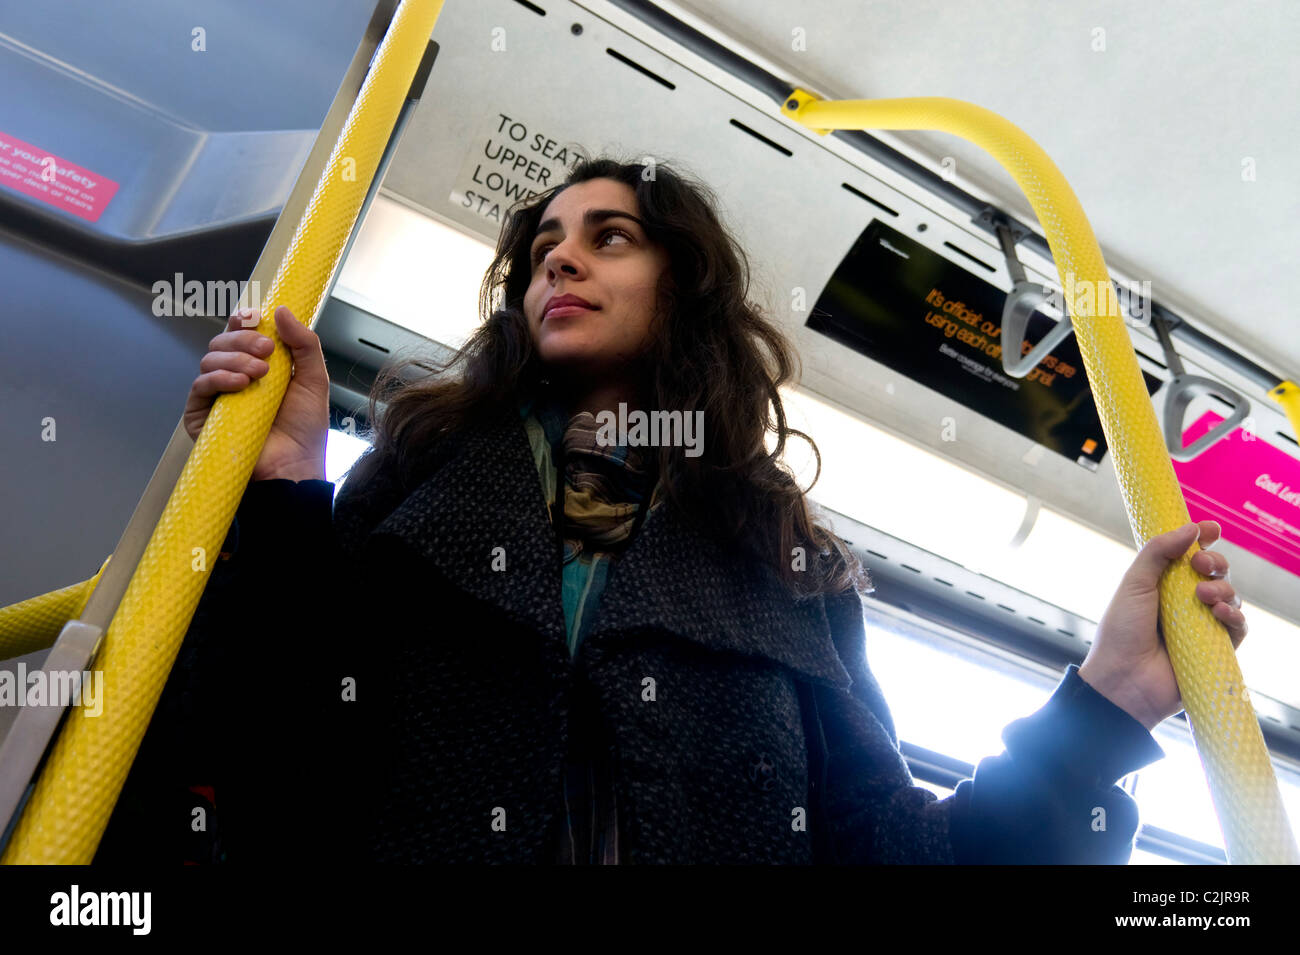 Low angle view of young woman riding a London bus Stock Photo